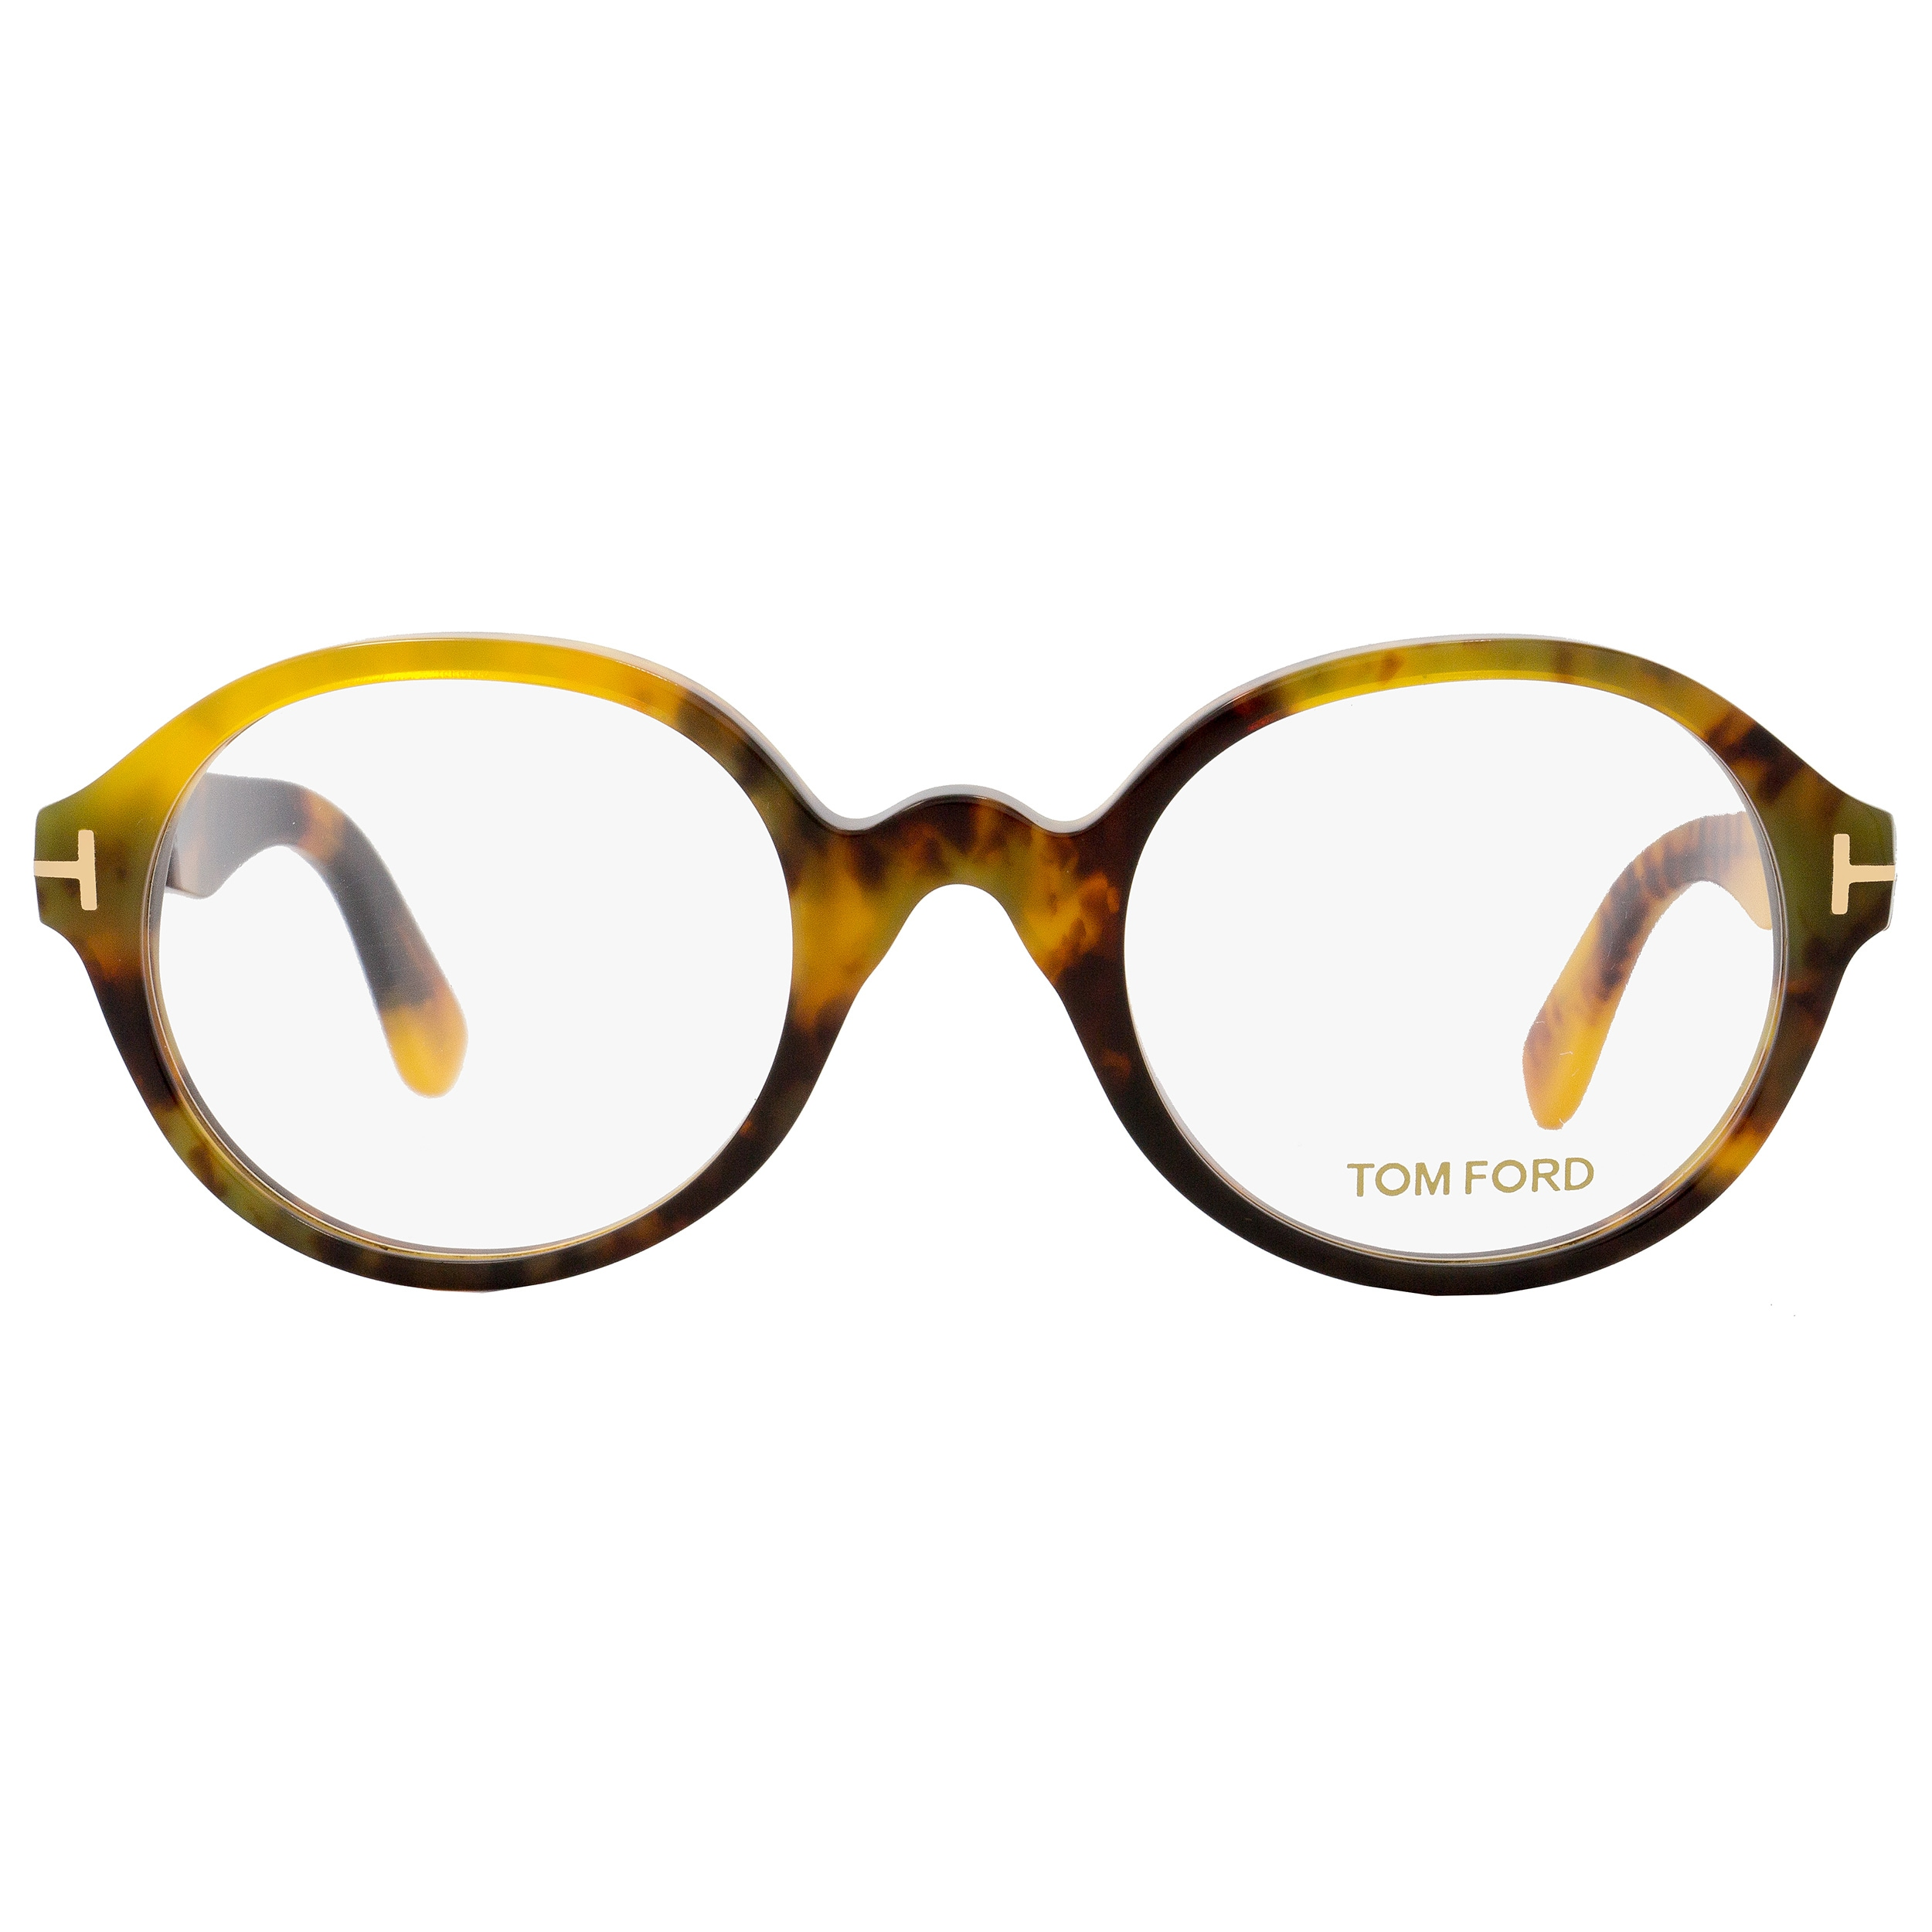 5aced4ca653b Shop Tom Ford TF5490 056 Unisex Honey Havana 51 mm Eyeglasses - Free  Shipping Today - Overstock - 18778828